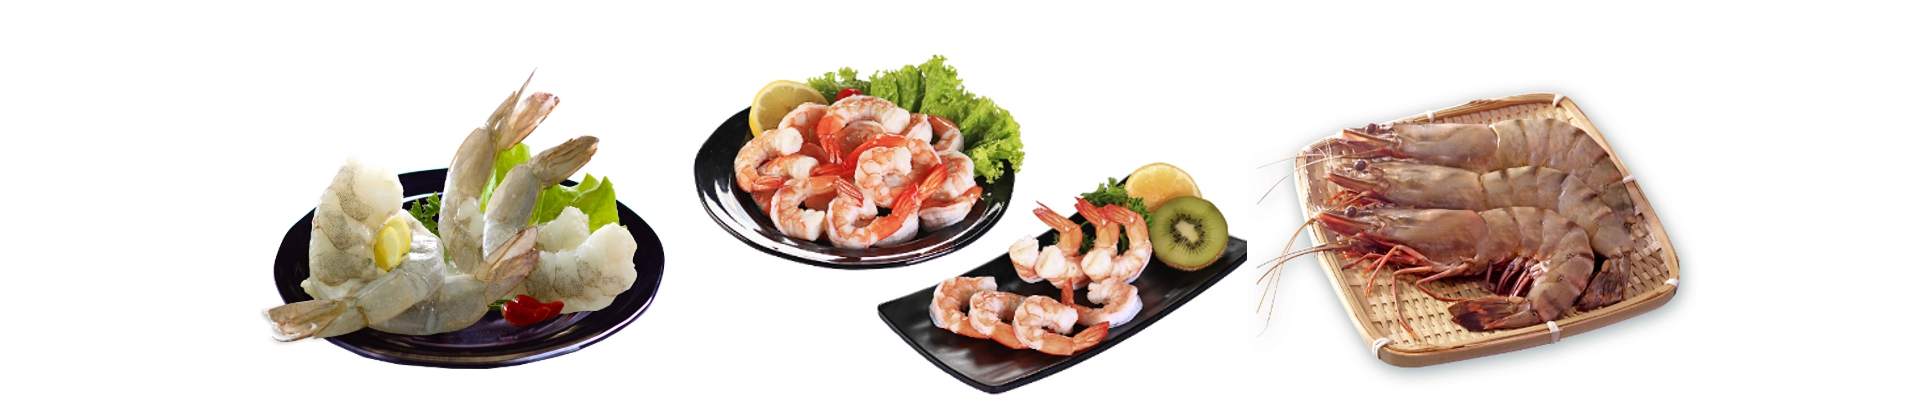 Seacold Seafoods Pte Ltd - Trading in Frozen Seafood Products